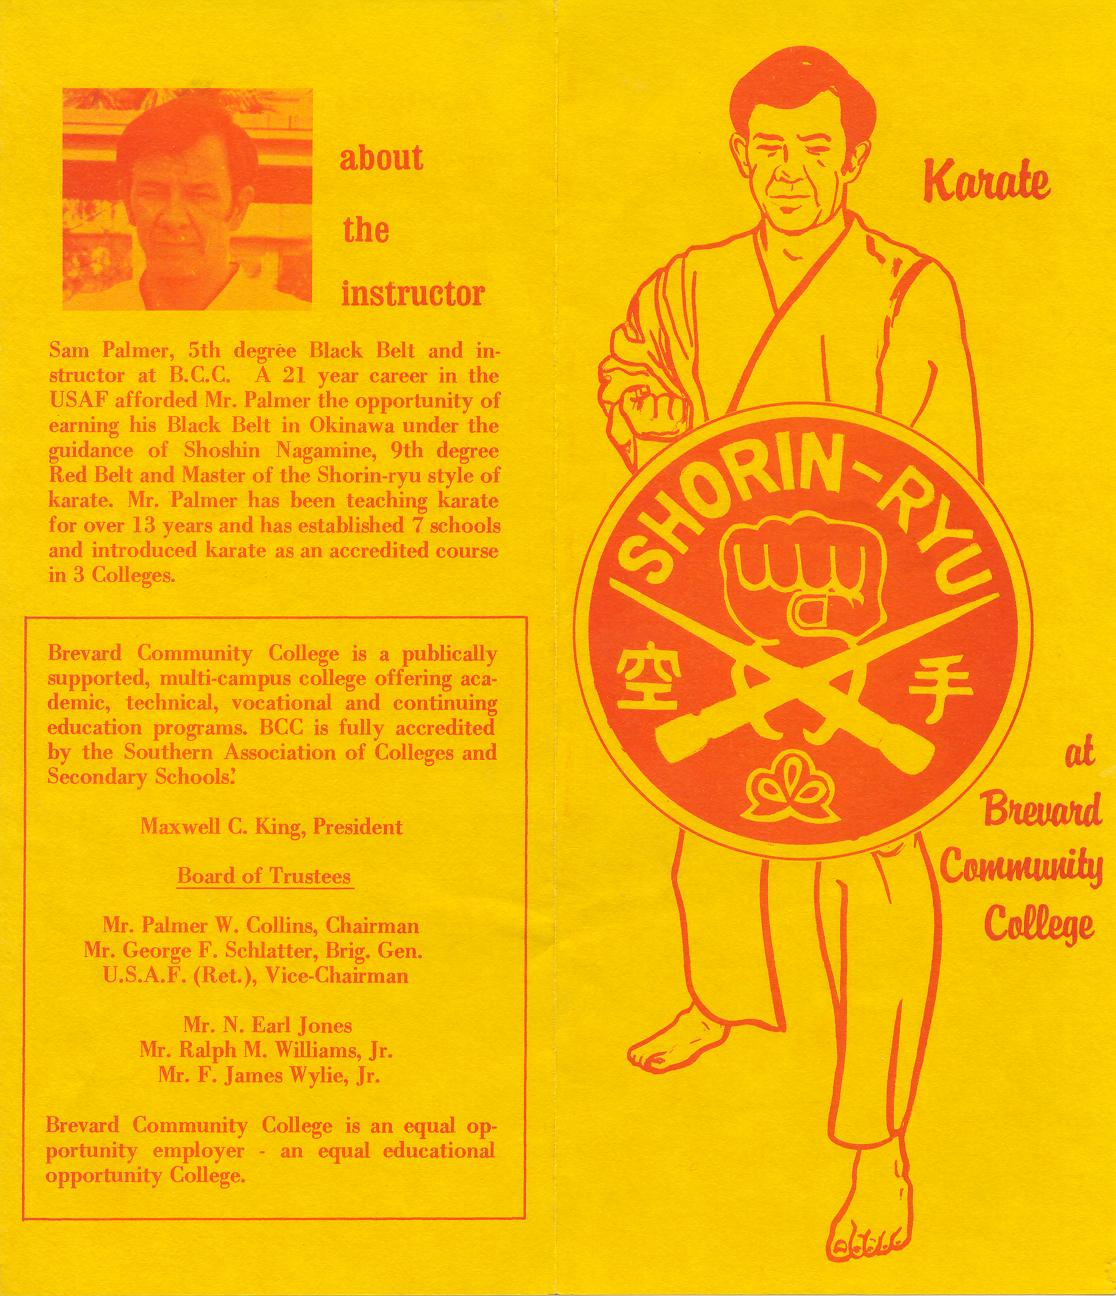 Brevard Community College Flyer, 1973